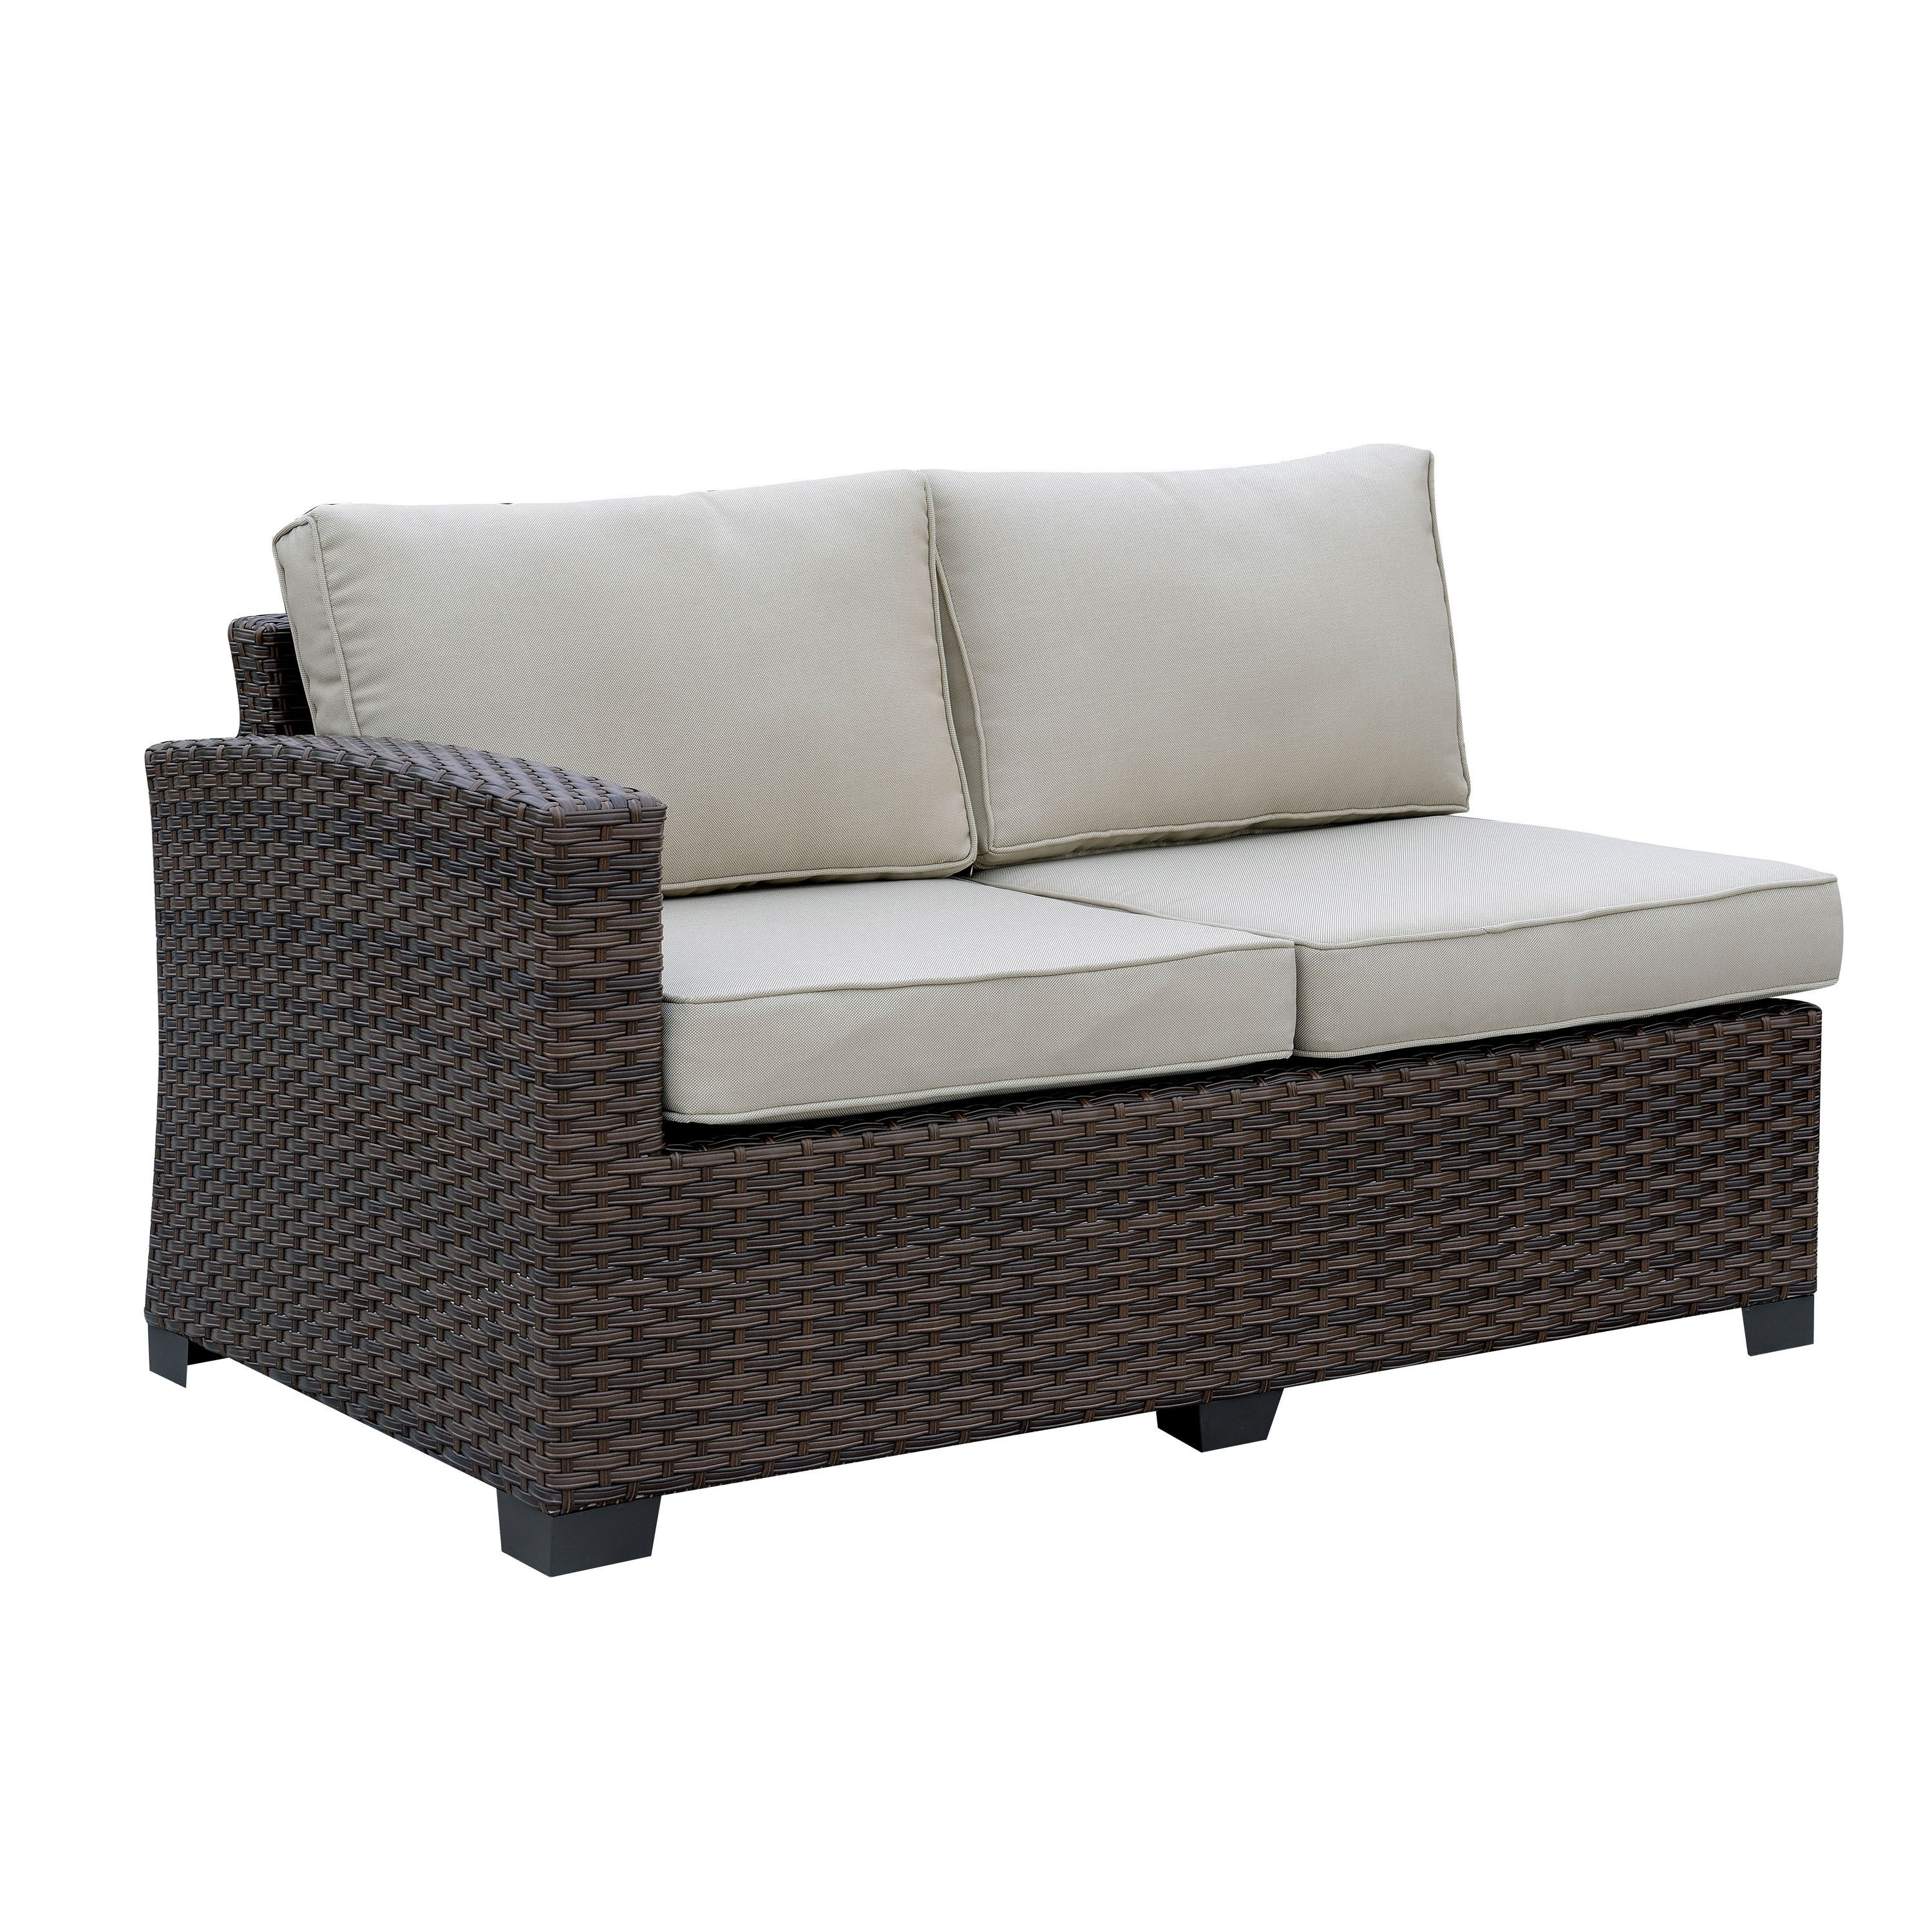 patio wicker bellissimainteriors enjoy having ideas sectional lawn otsldtp design outdoor at creative sets your fantastic furniture